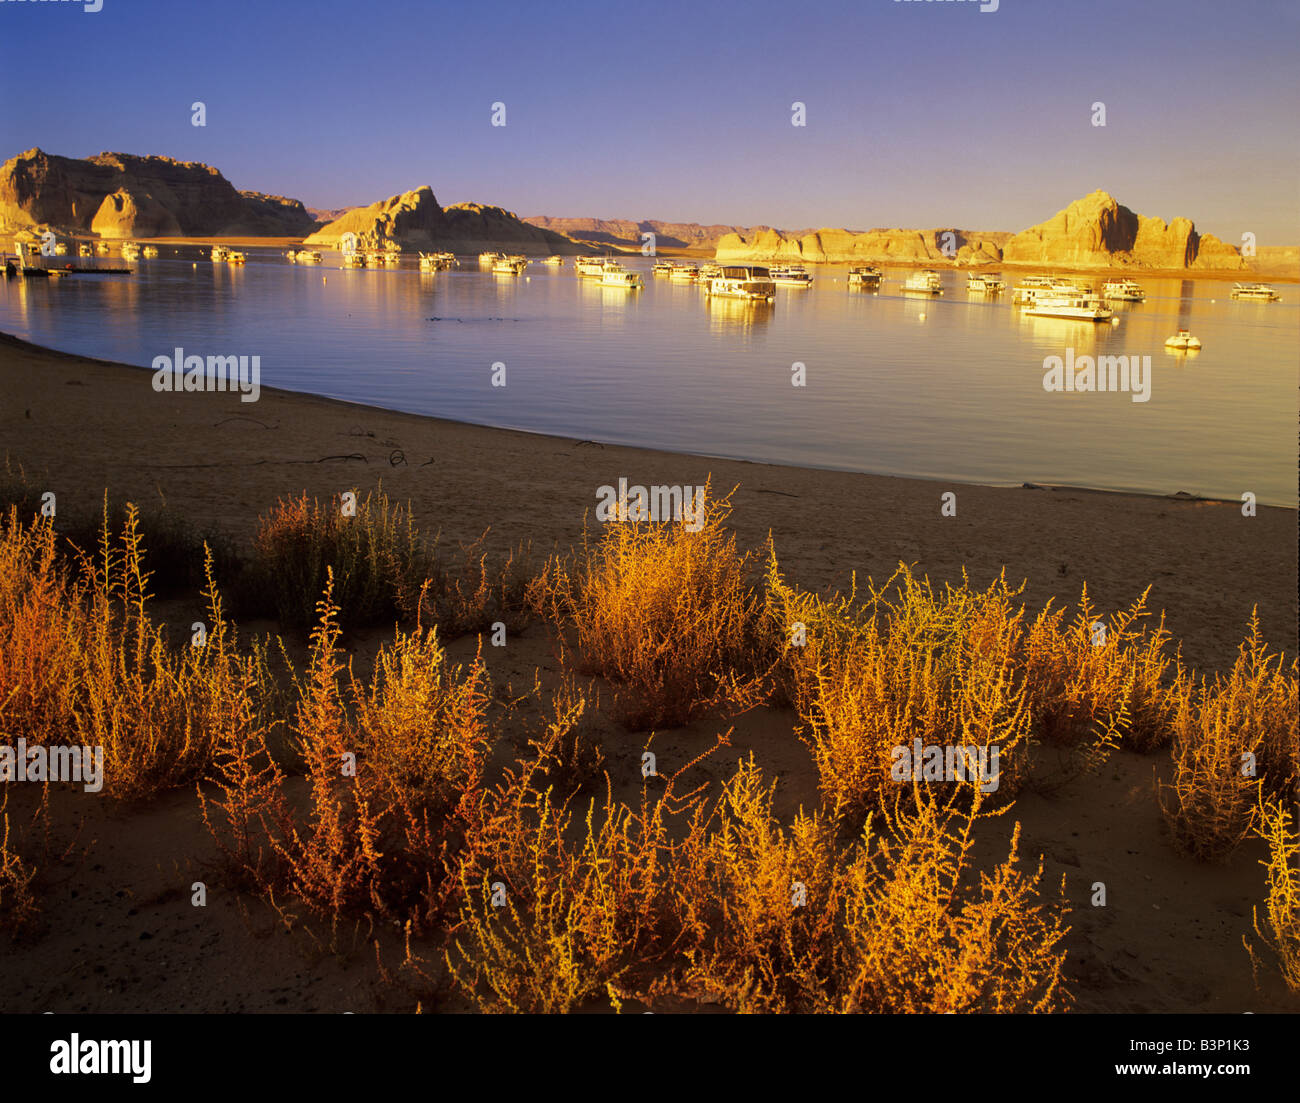 Boats at Wahweap Marina Lake Powell Utah - Stock Image